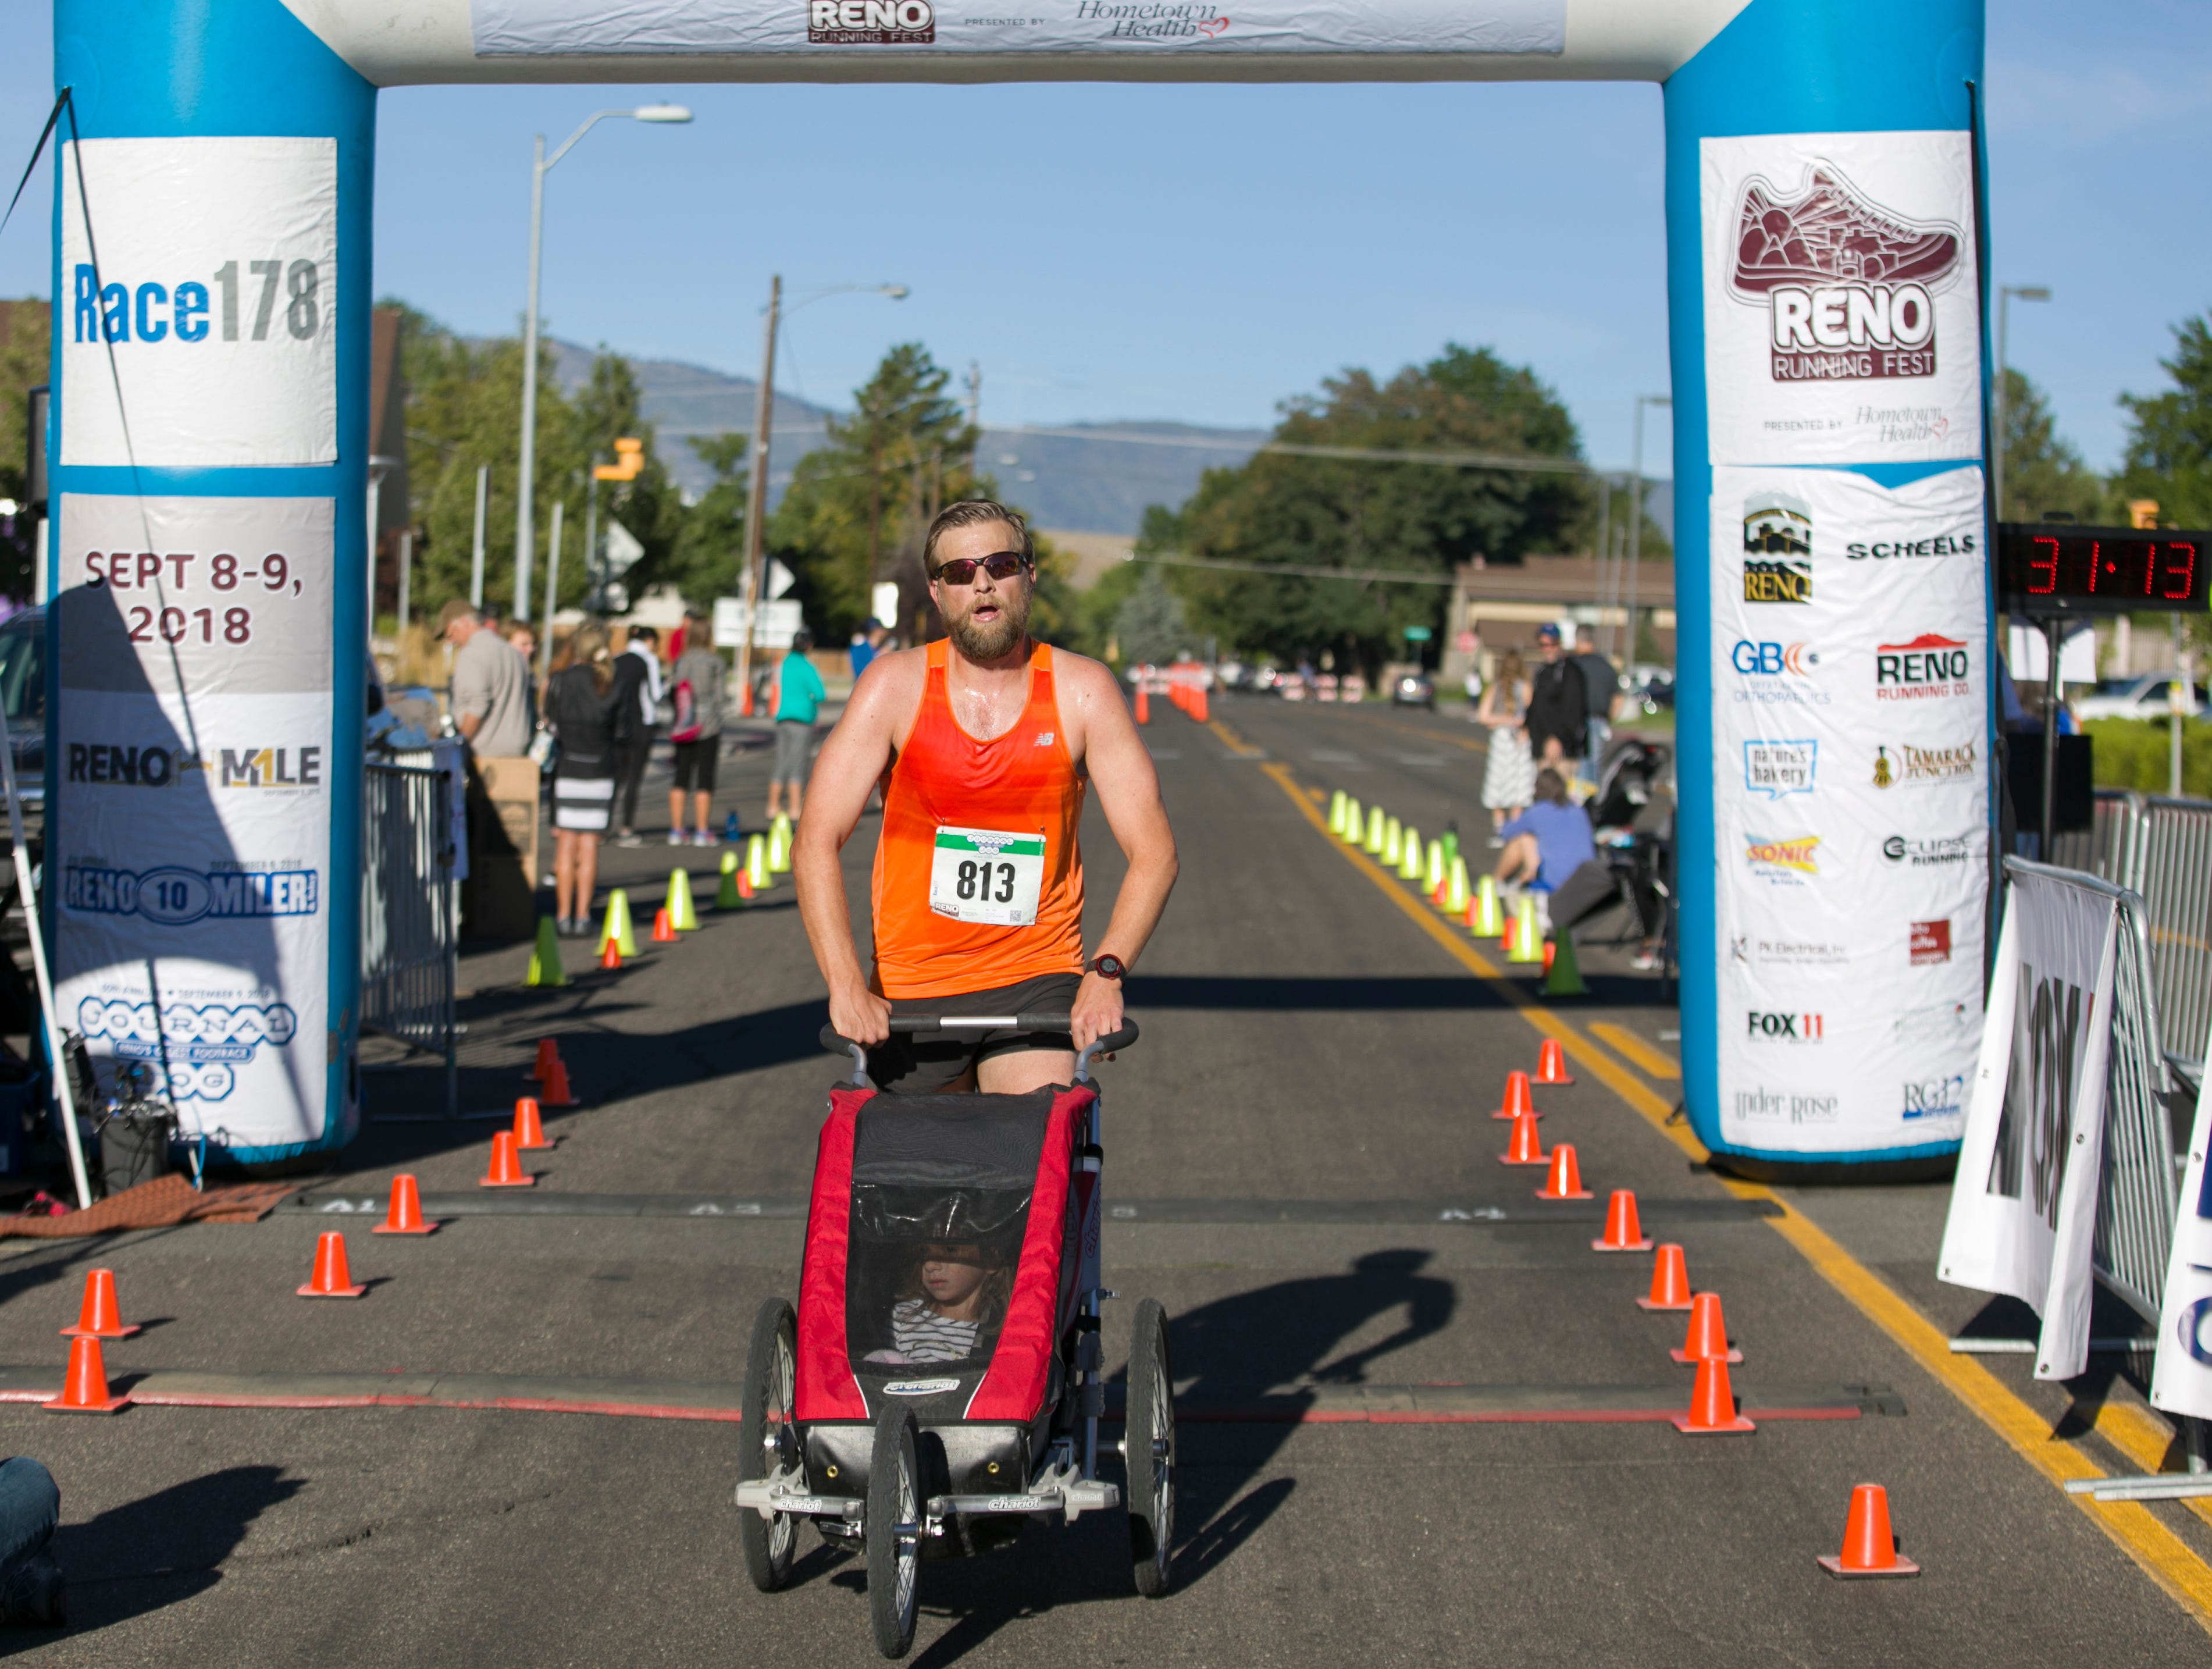 Dave Zaski, pushing daughter Makaylin, wins the stroller portion of the 50th Annual Journal Jog in Reno, Nevada on Sunday, September 9, 2018.